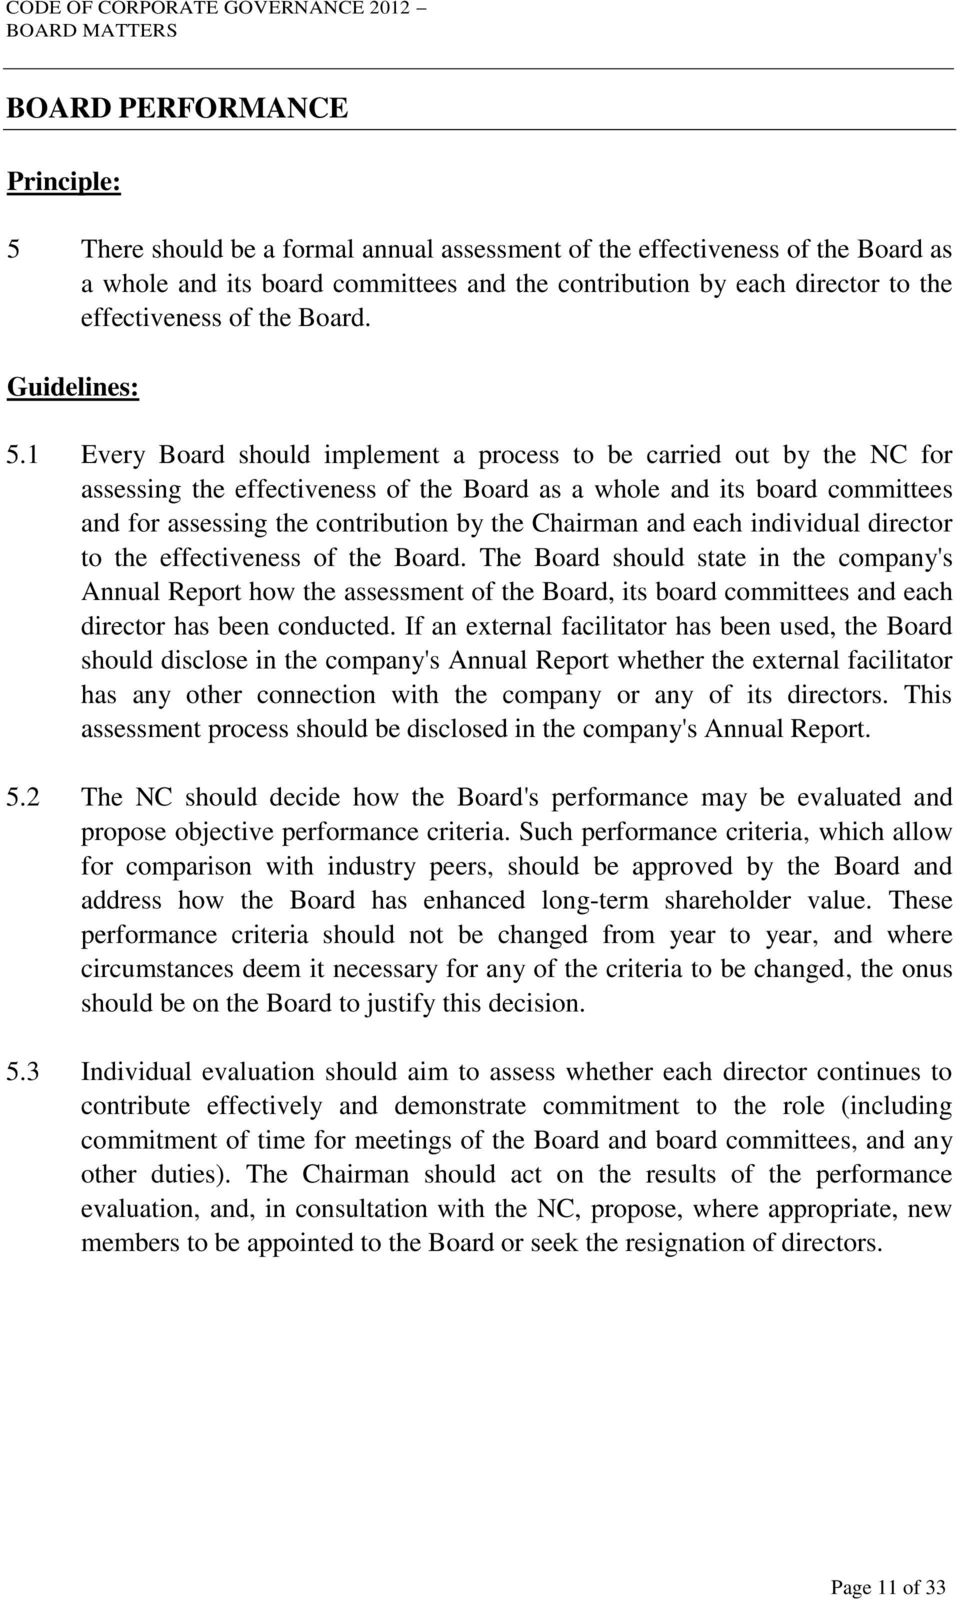 1 Every Board should implement a process to be carried out by the NC for assessing the effectiveness of the Board as a whole and its board committees and for assessing the contribution by the